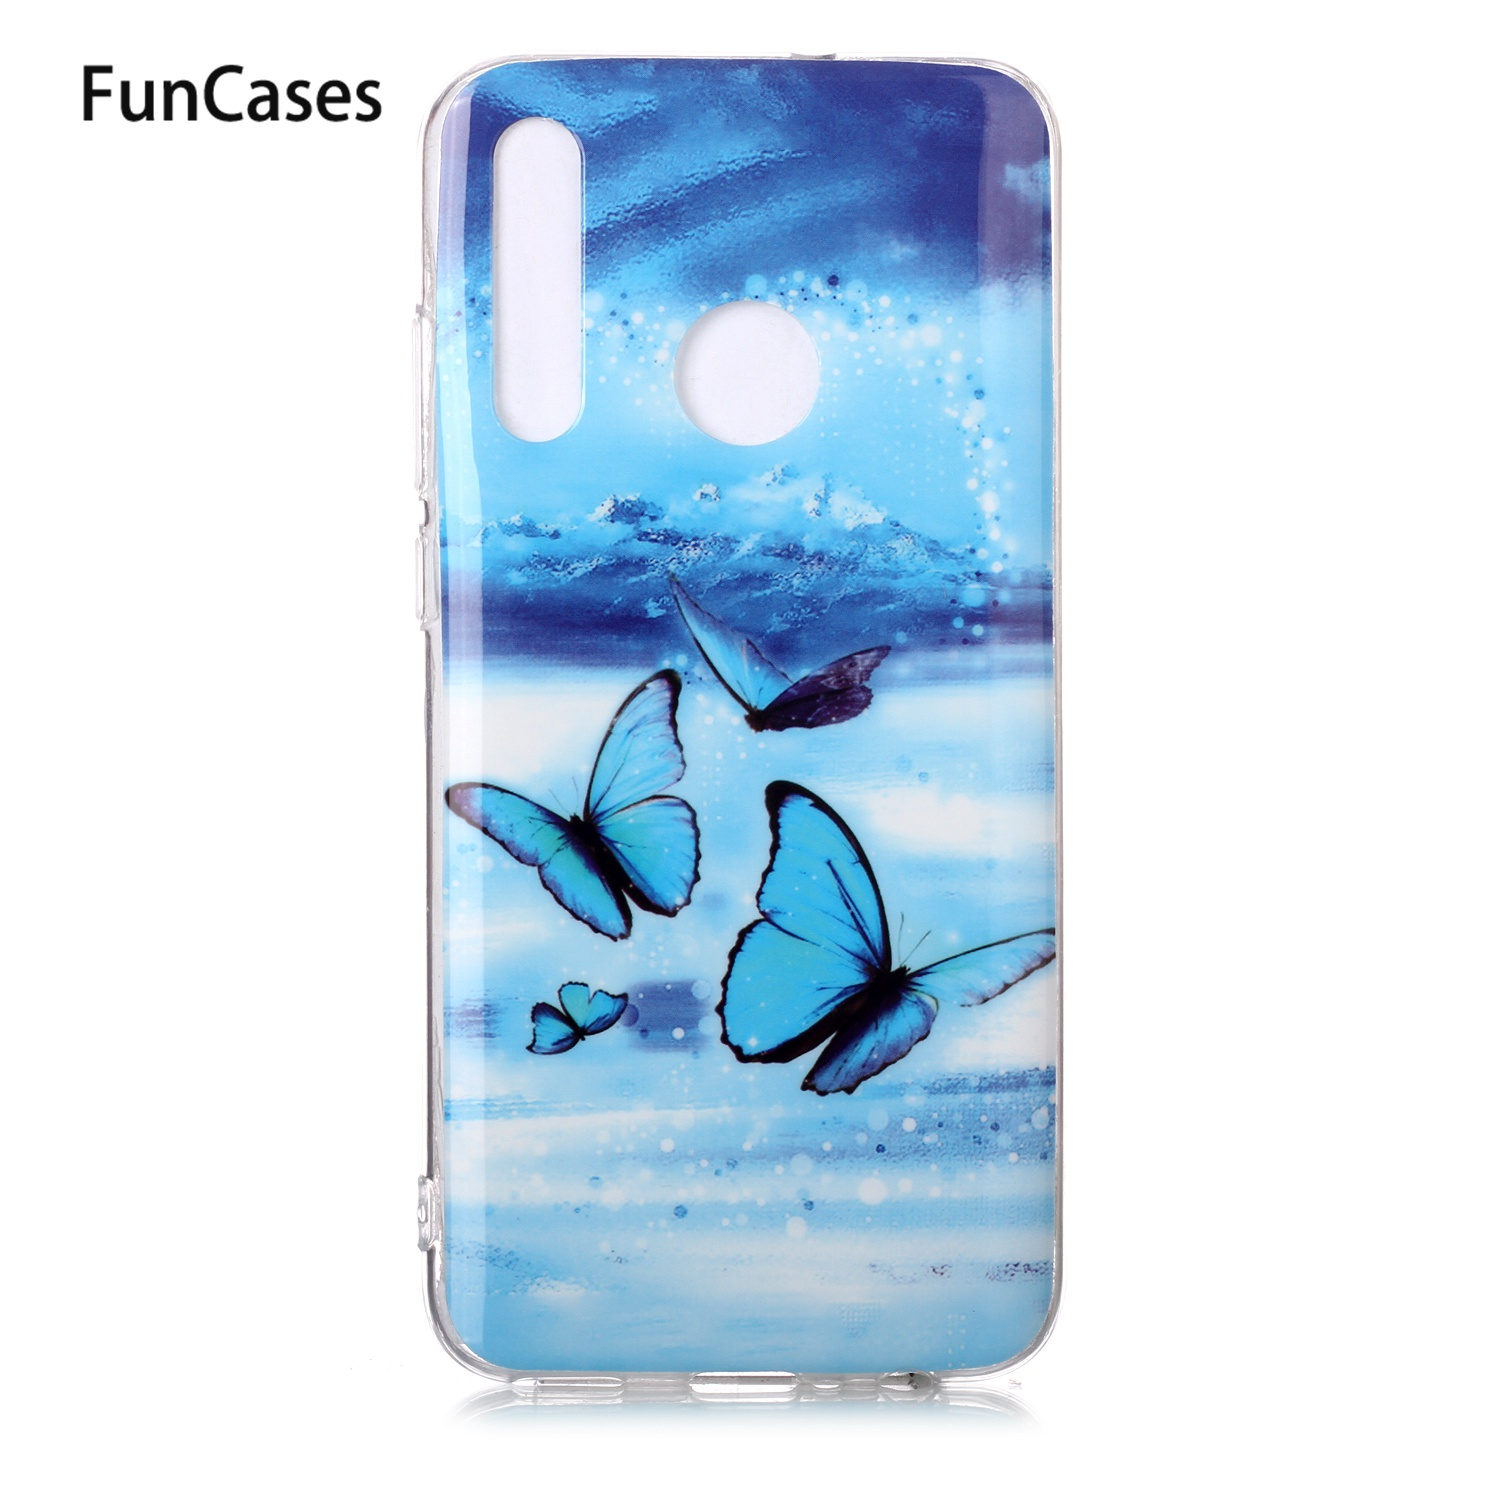 Lovely Silicone Cases Covers For Huawei Honor 8A Luminous TPU Shell Huawei Honor 8S P Smart 2019 Y6 Prime 10 Lite Y5 Y7 Aksesuar(China)